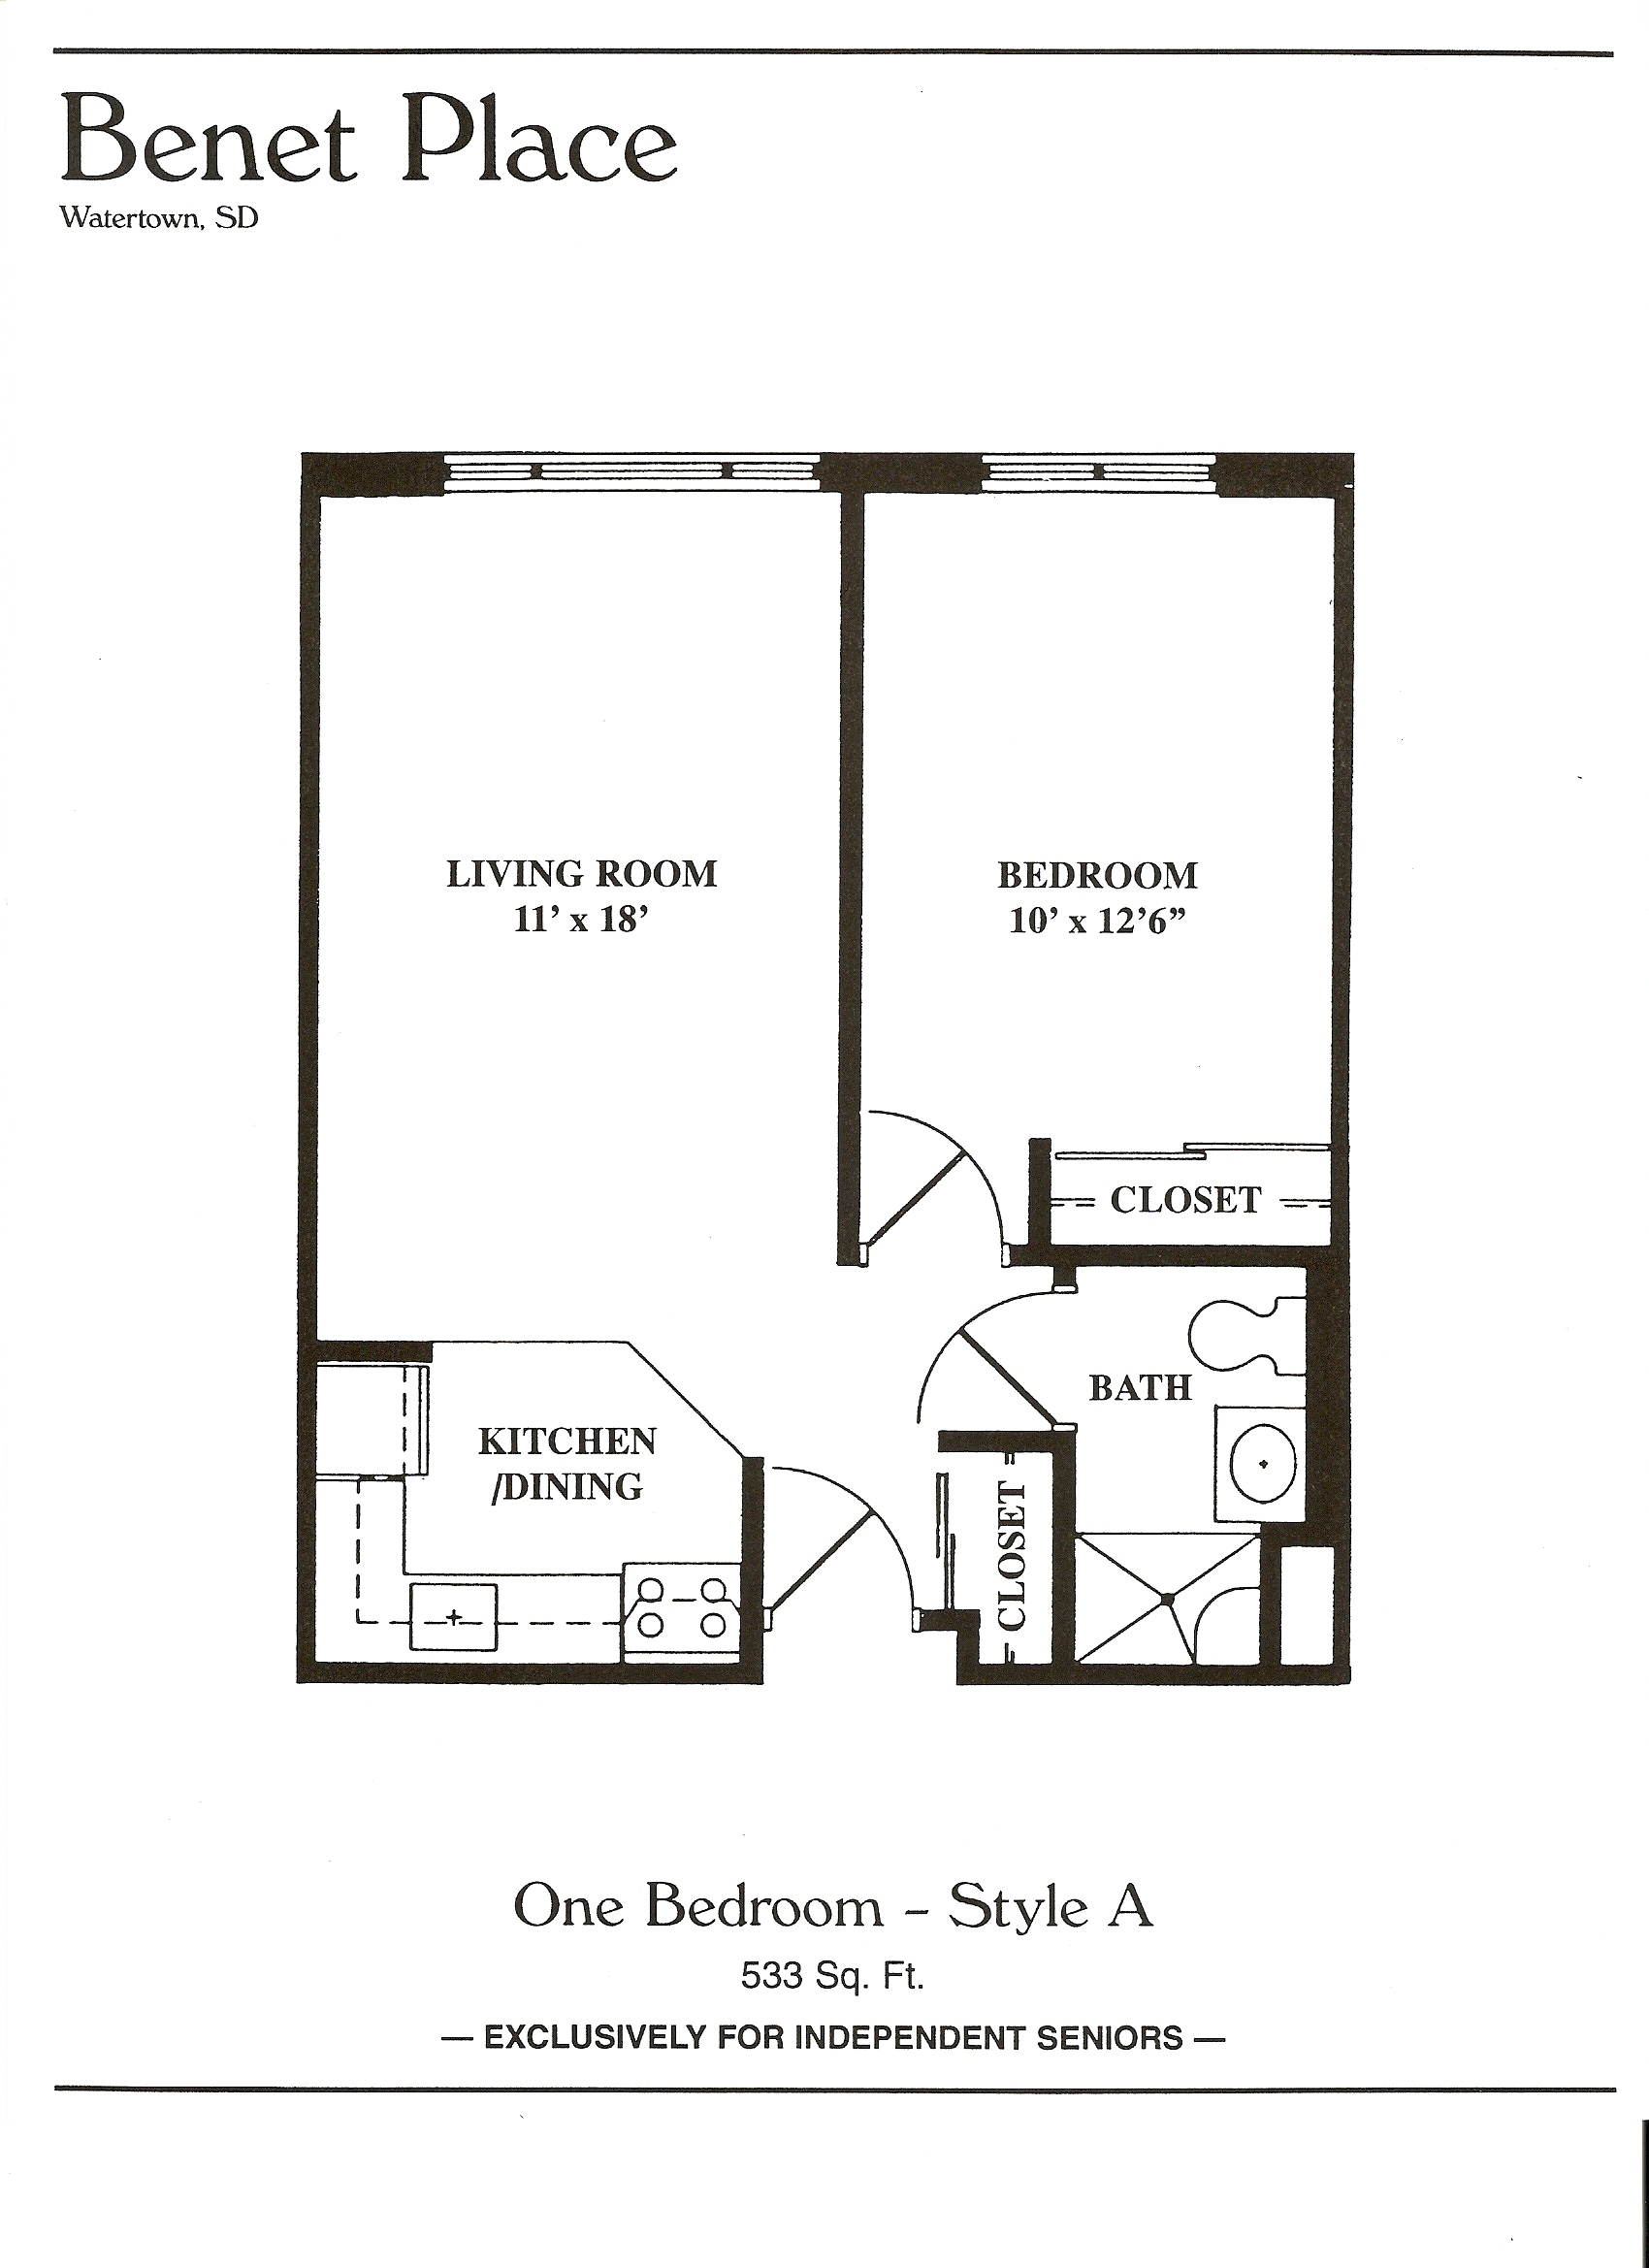 Small 1 bedroom apartment